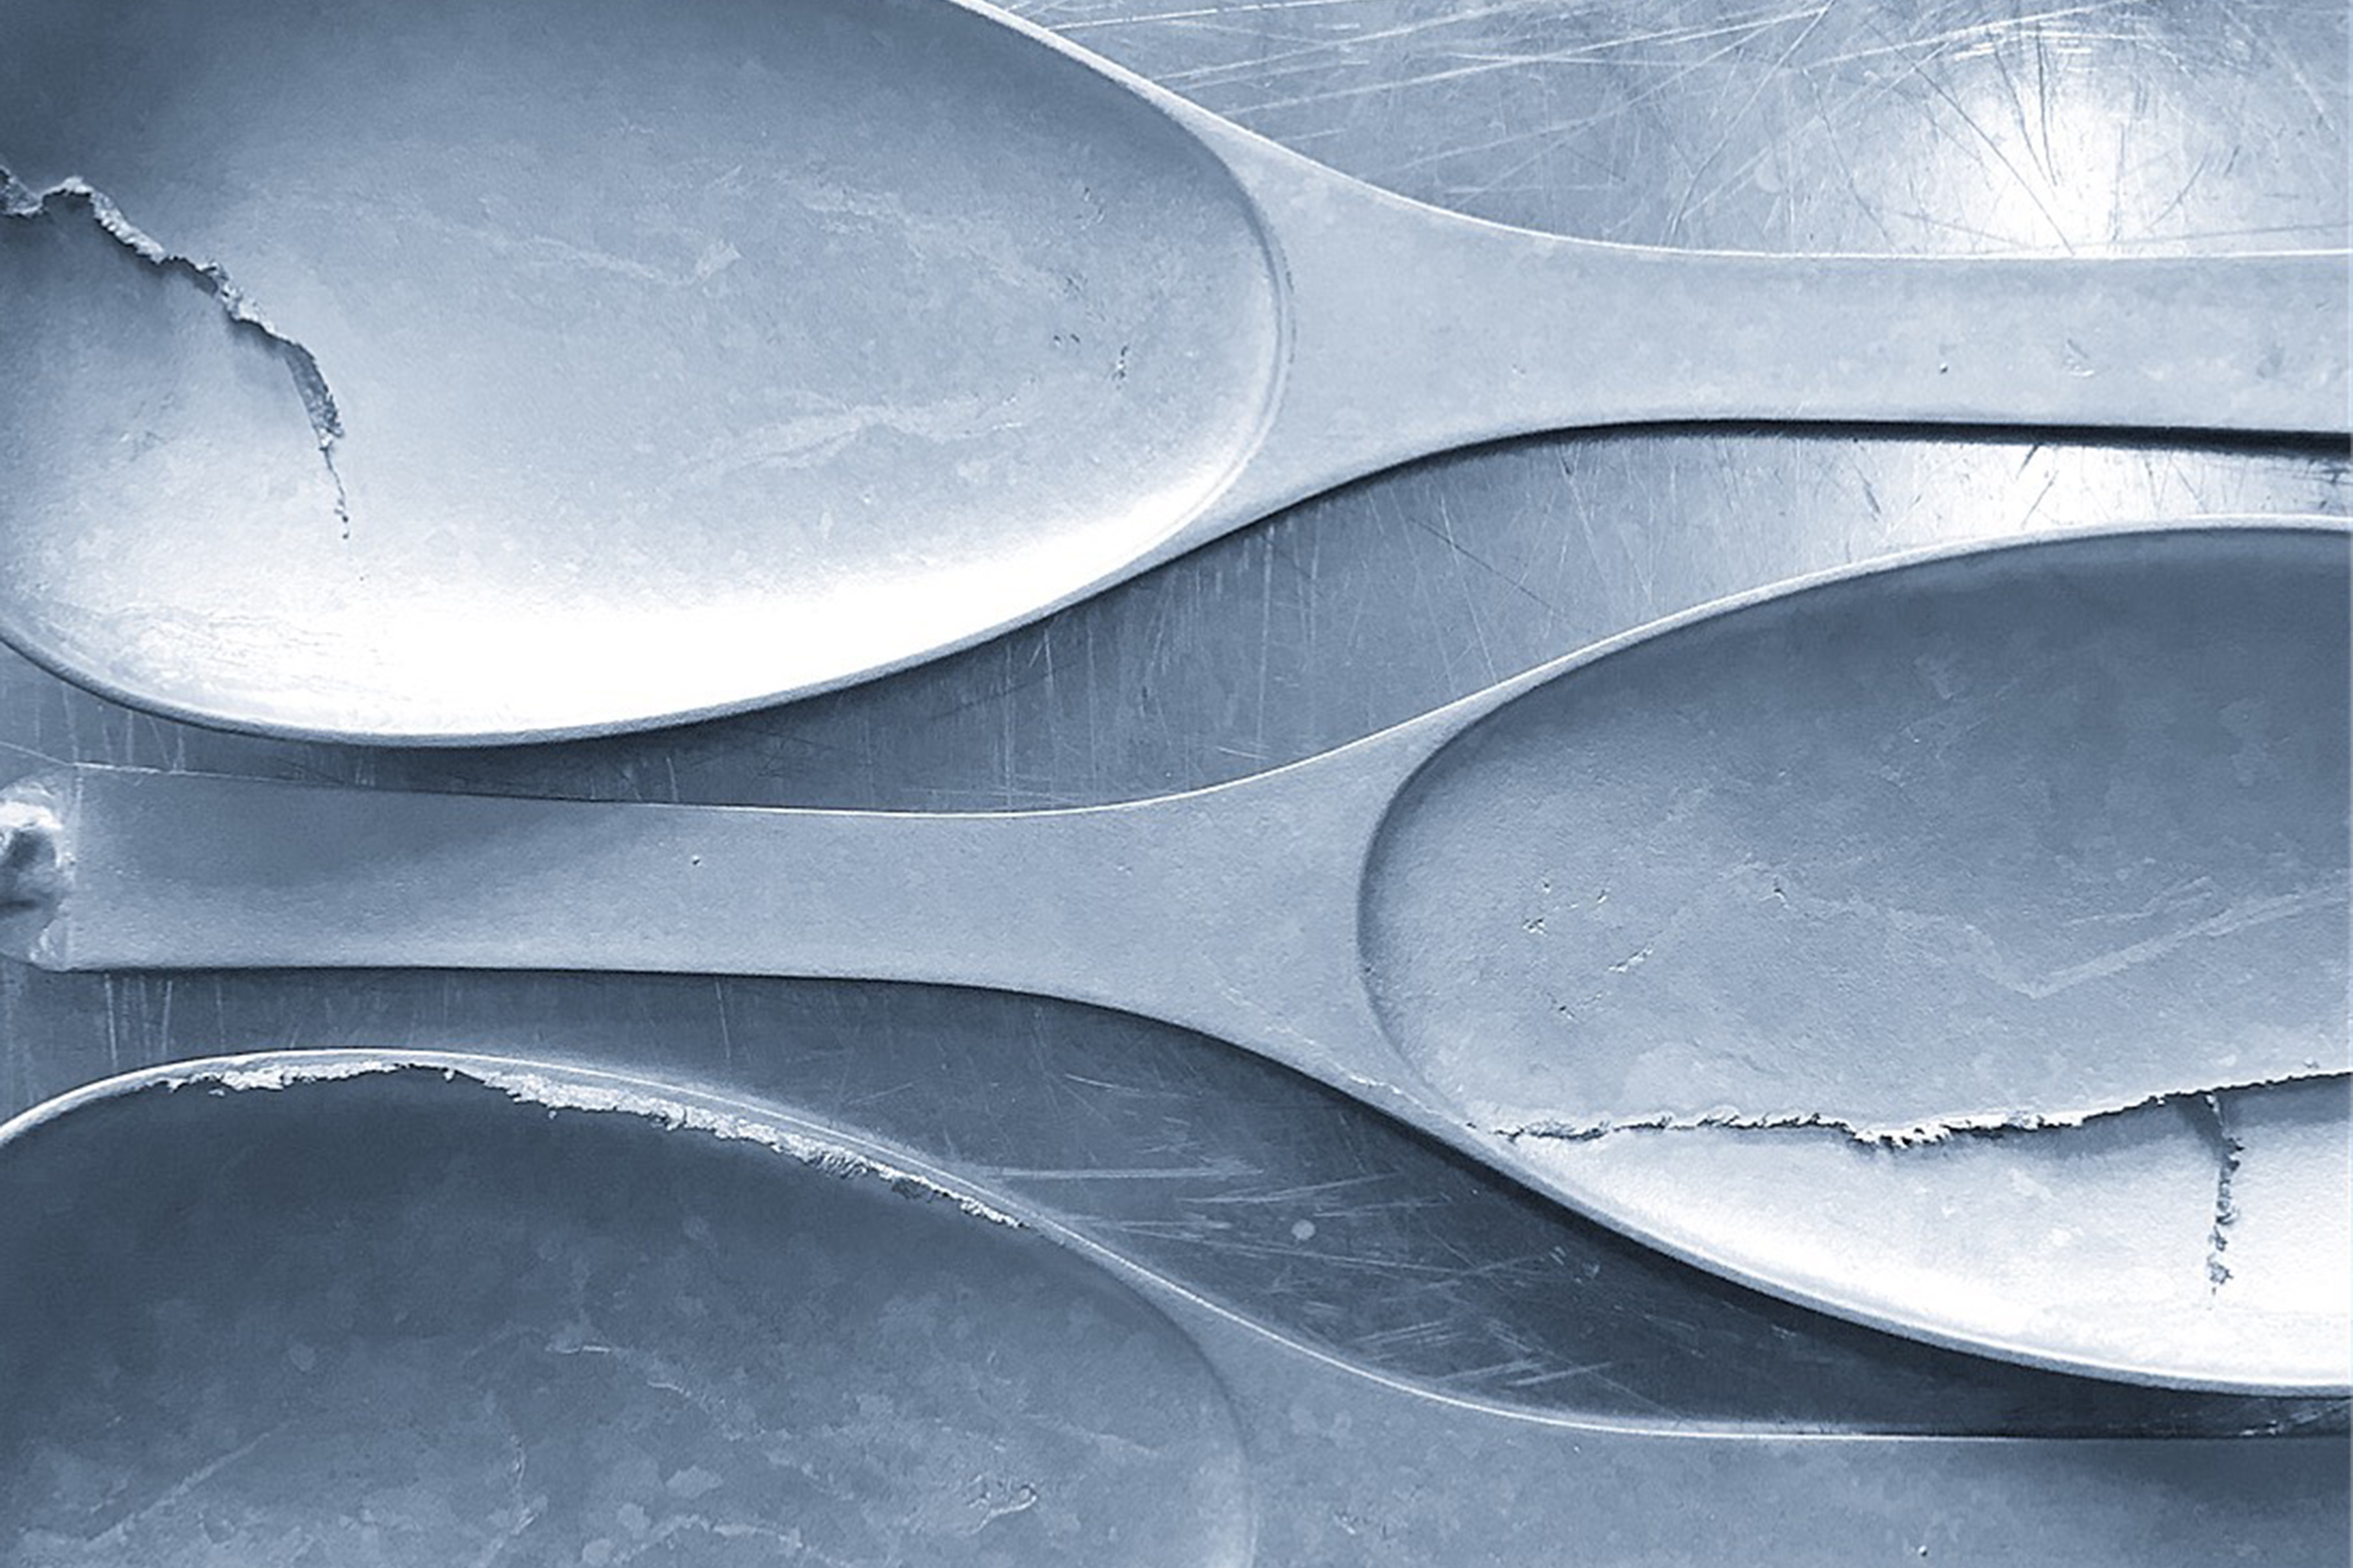 E&Co - Lost wax casting brass spoons